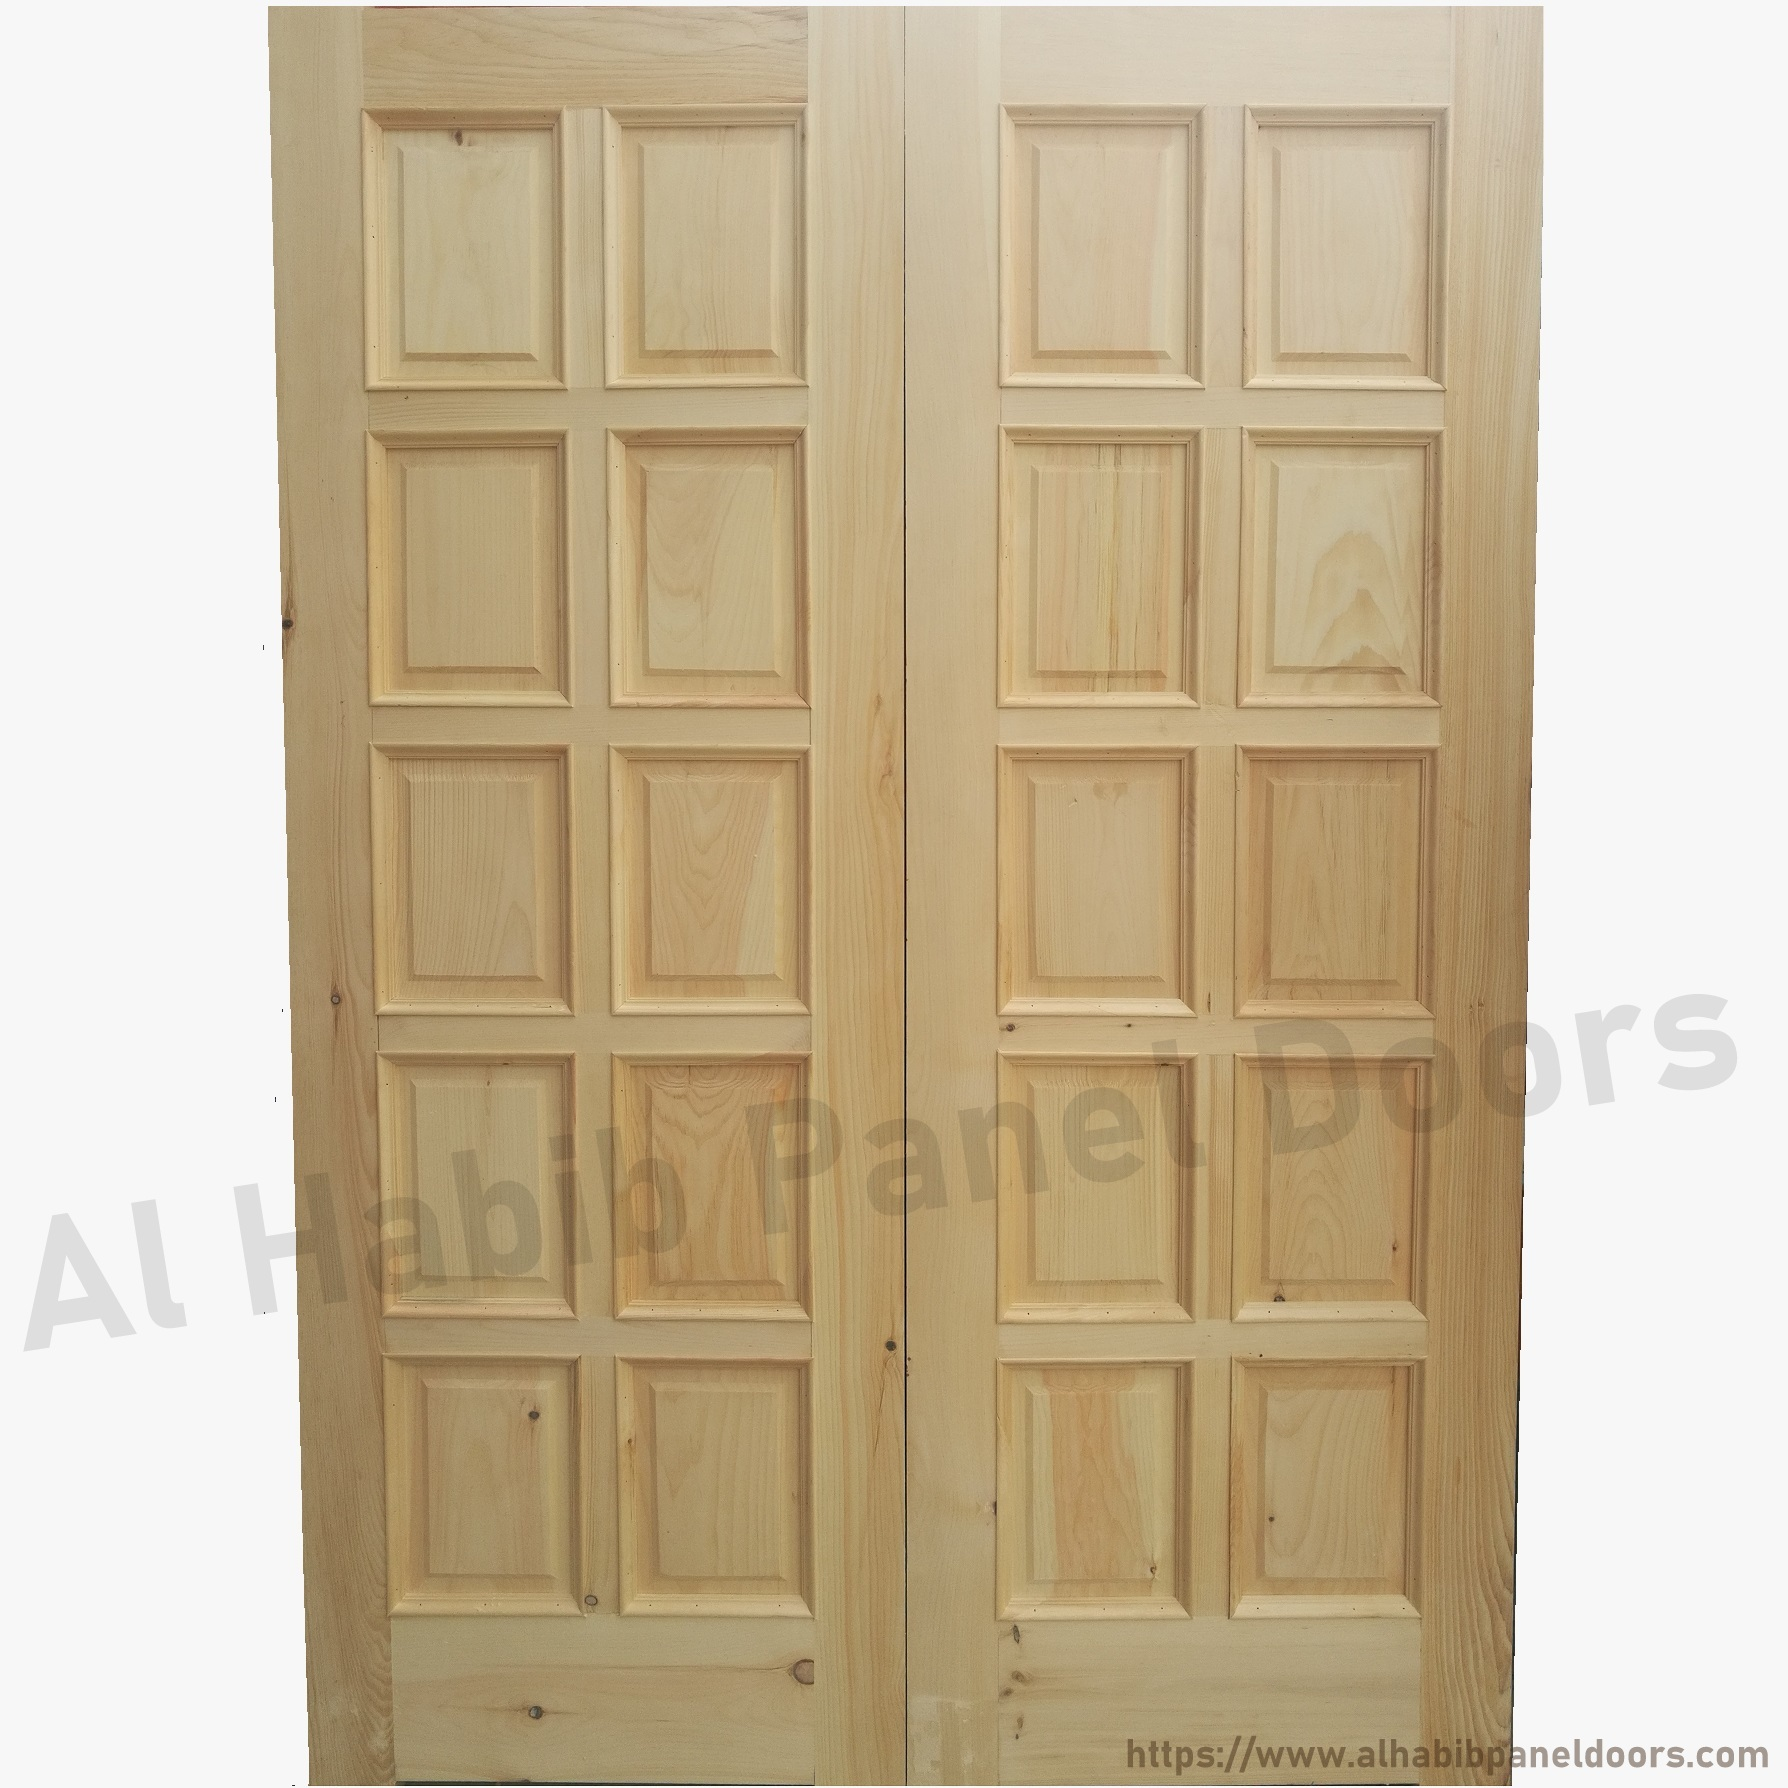 Latest wooden main double door designs native home for Wooden main doors design pictures